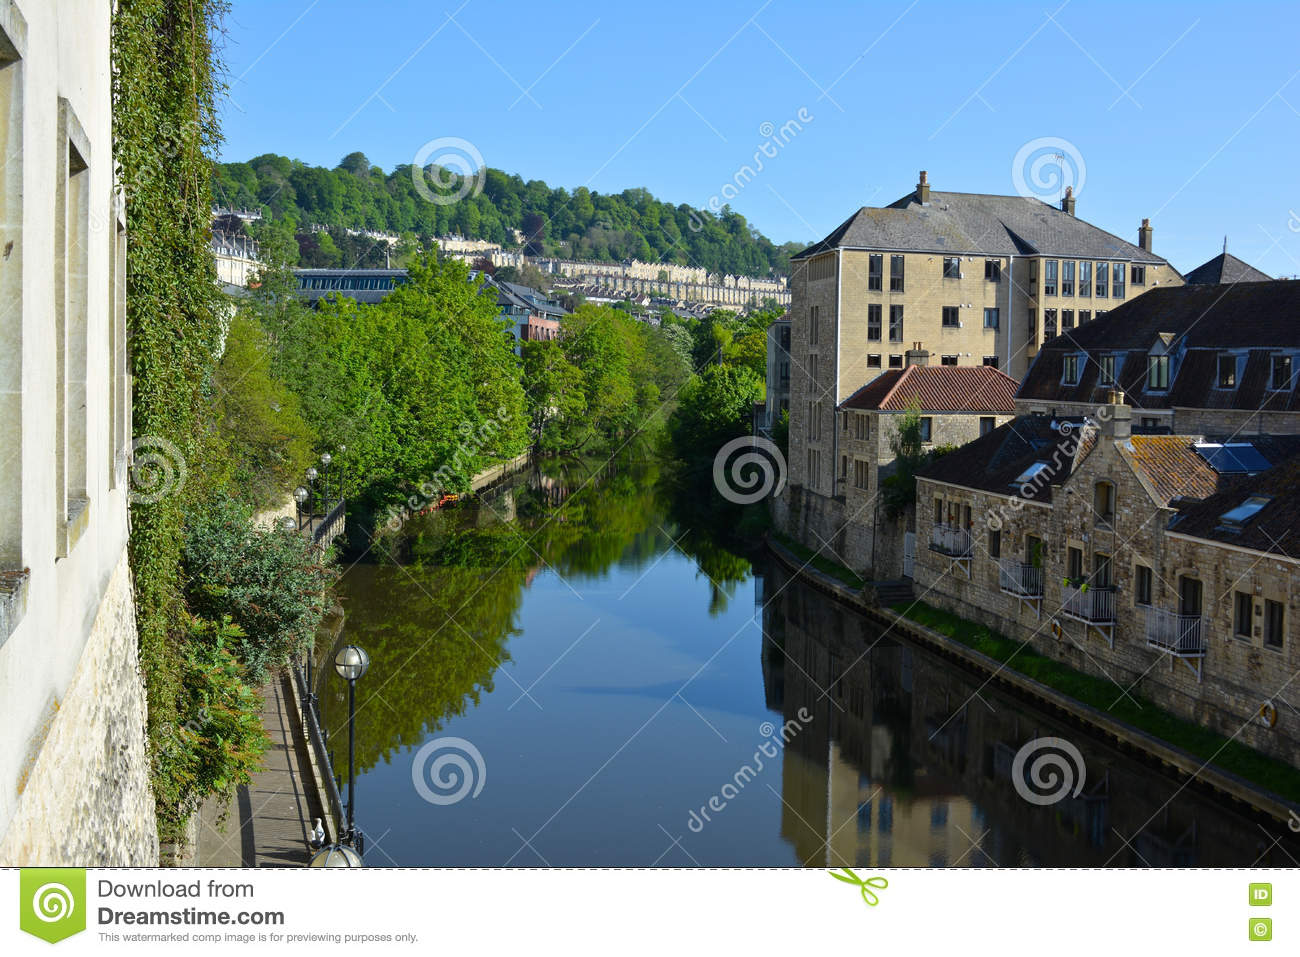 Bristol avon united kingdom